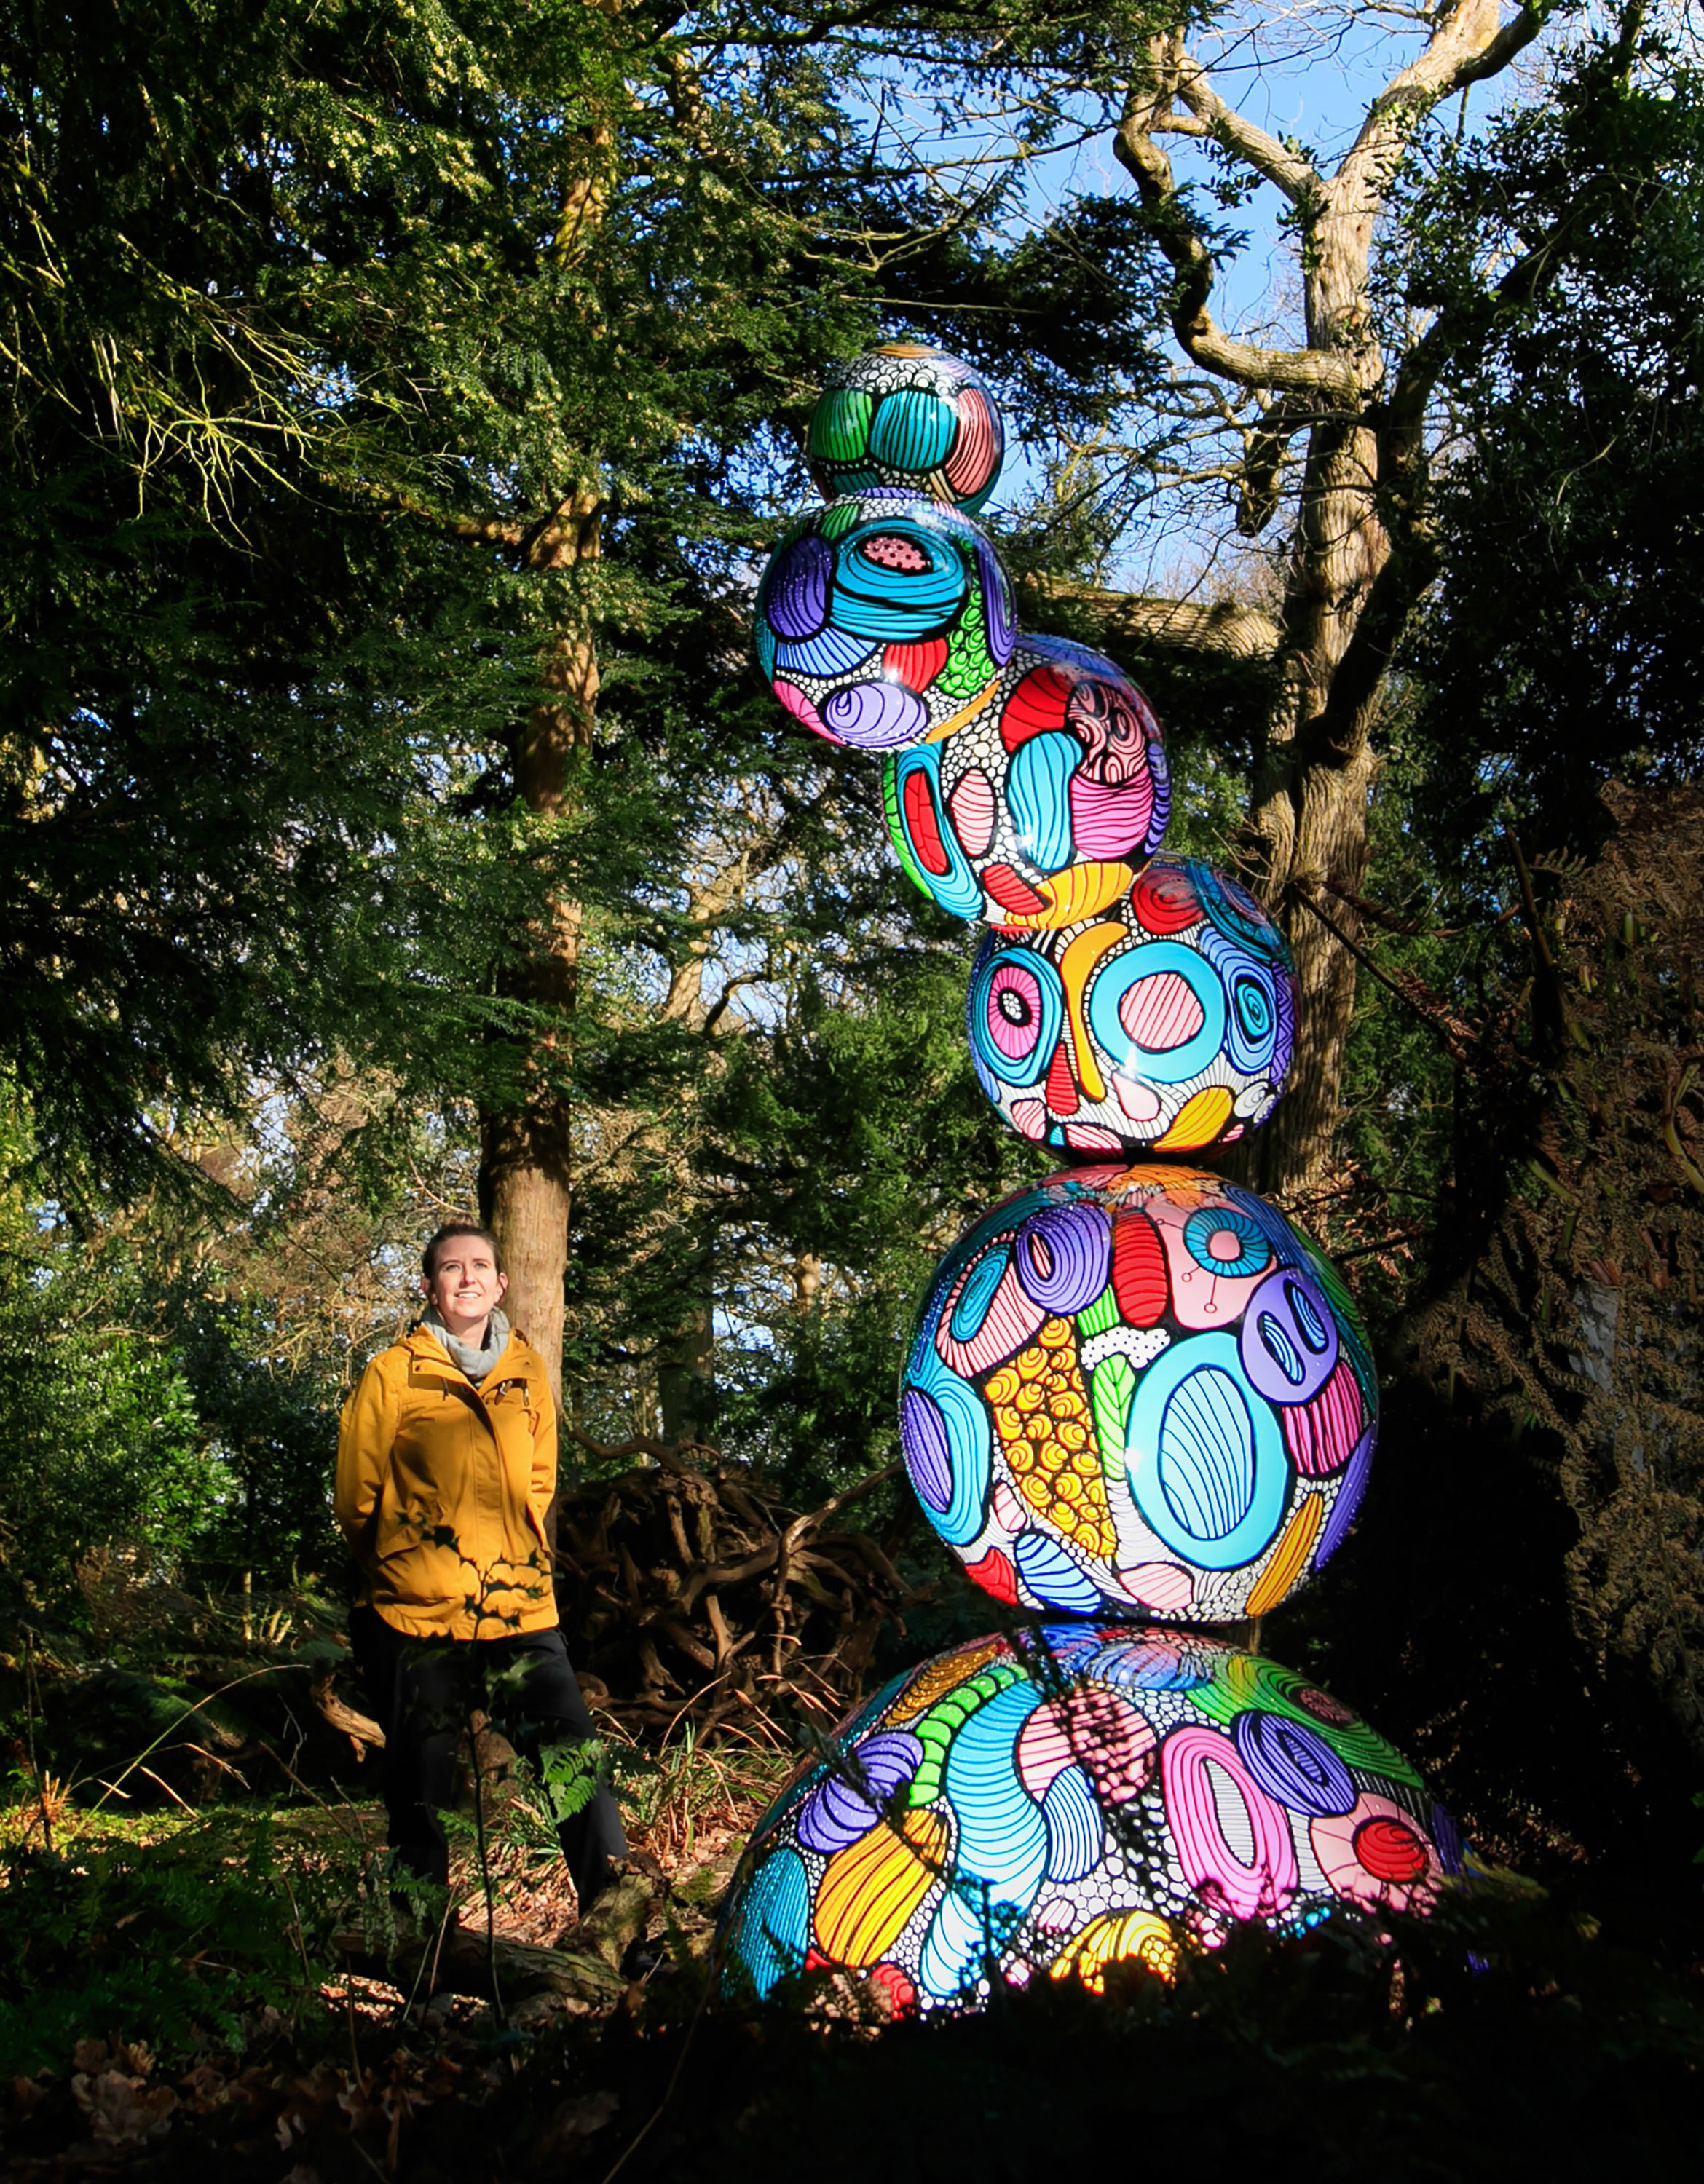 Kat Trinder looks at an art installation entitled Colour Forms - straws upon the water by collaborators Lenny and Whale, which has been unveiled in Wentworth Castle Gardens in Barnsley, South Yorkshire Picture: DANNY LAWSON/PA